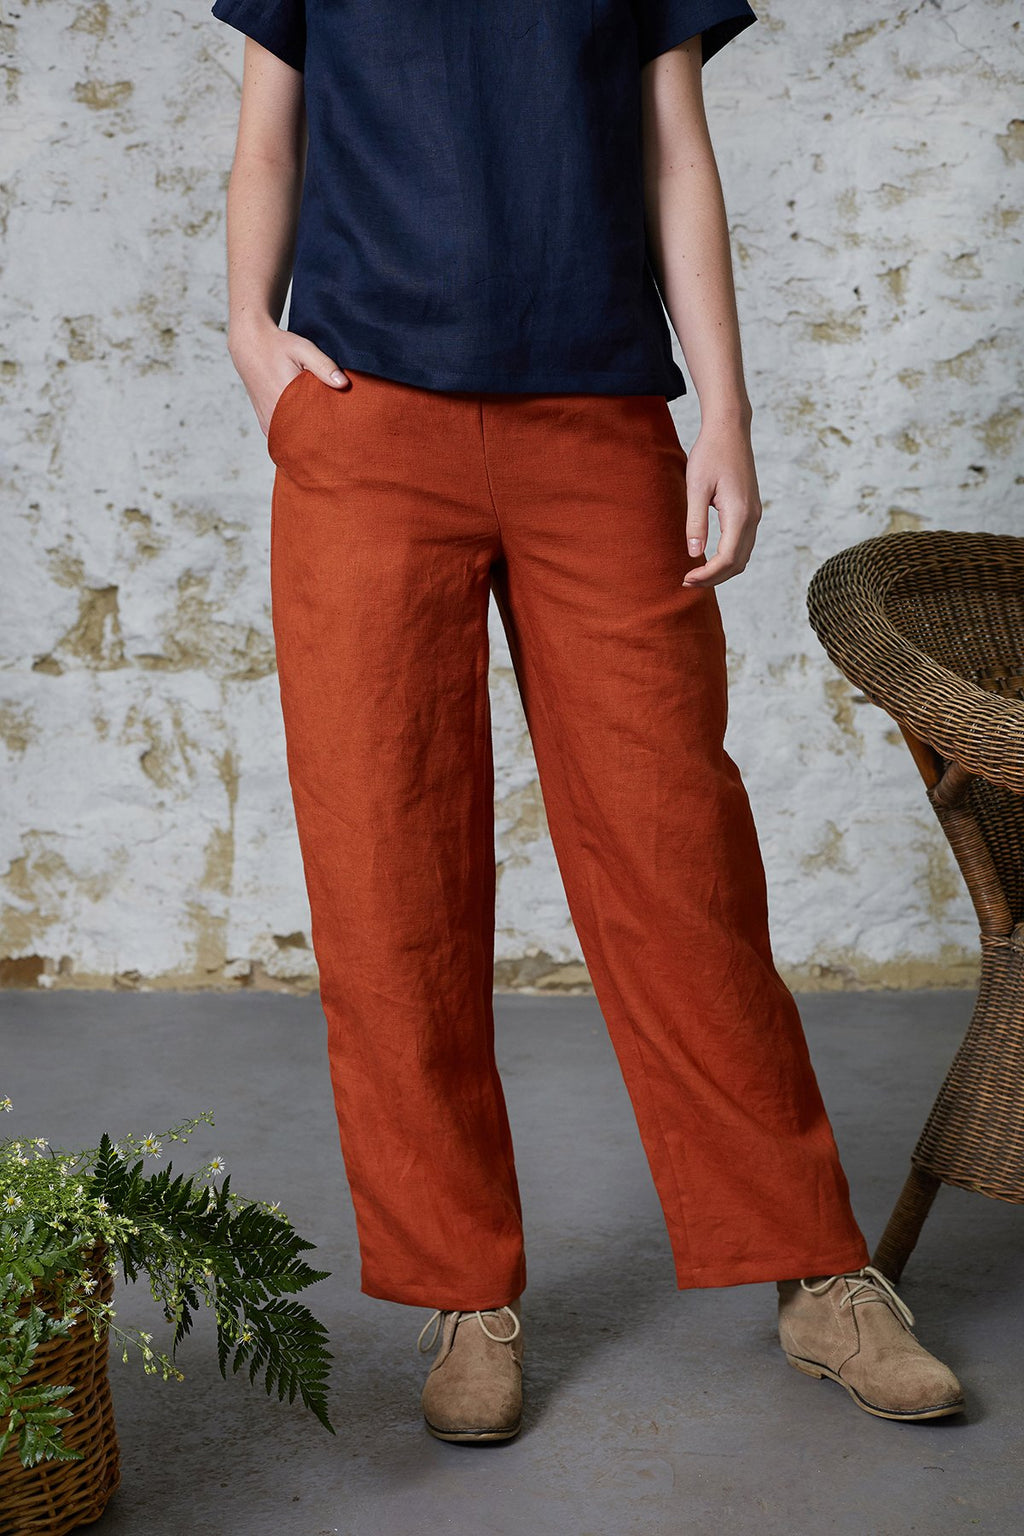 Paprika Billy Button Pants Pants Ethical Sustainable Vegan Organic Australian fashion womens clothes